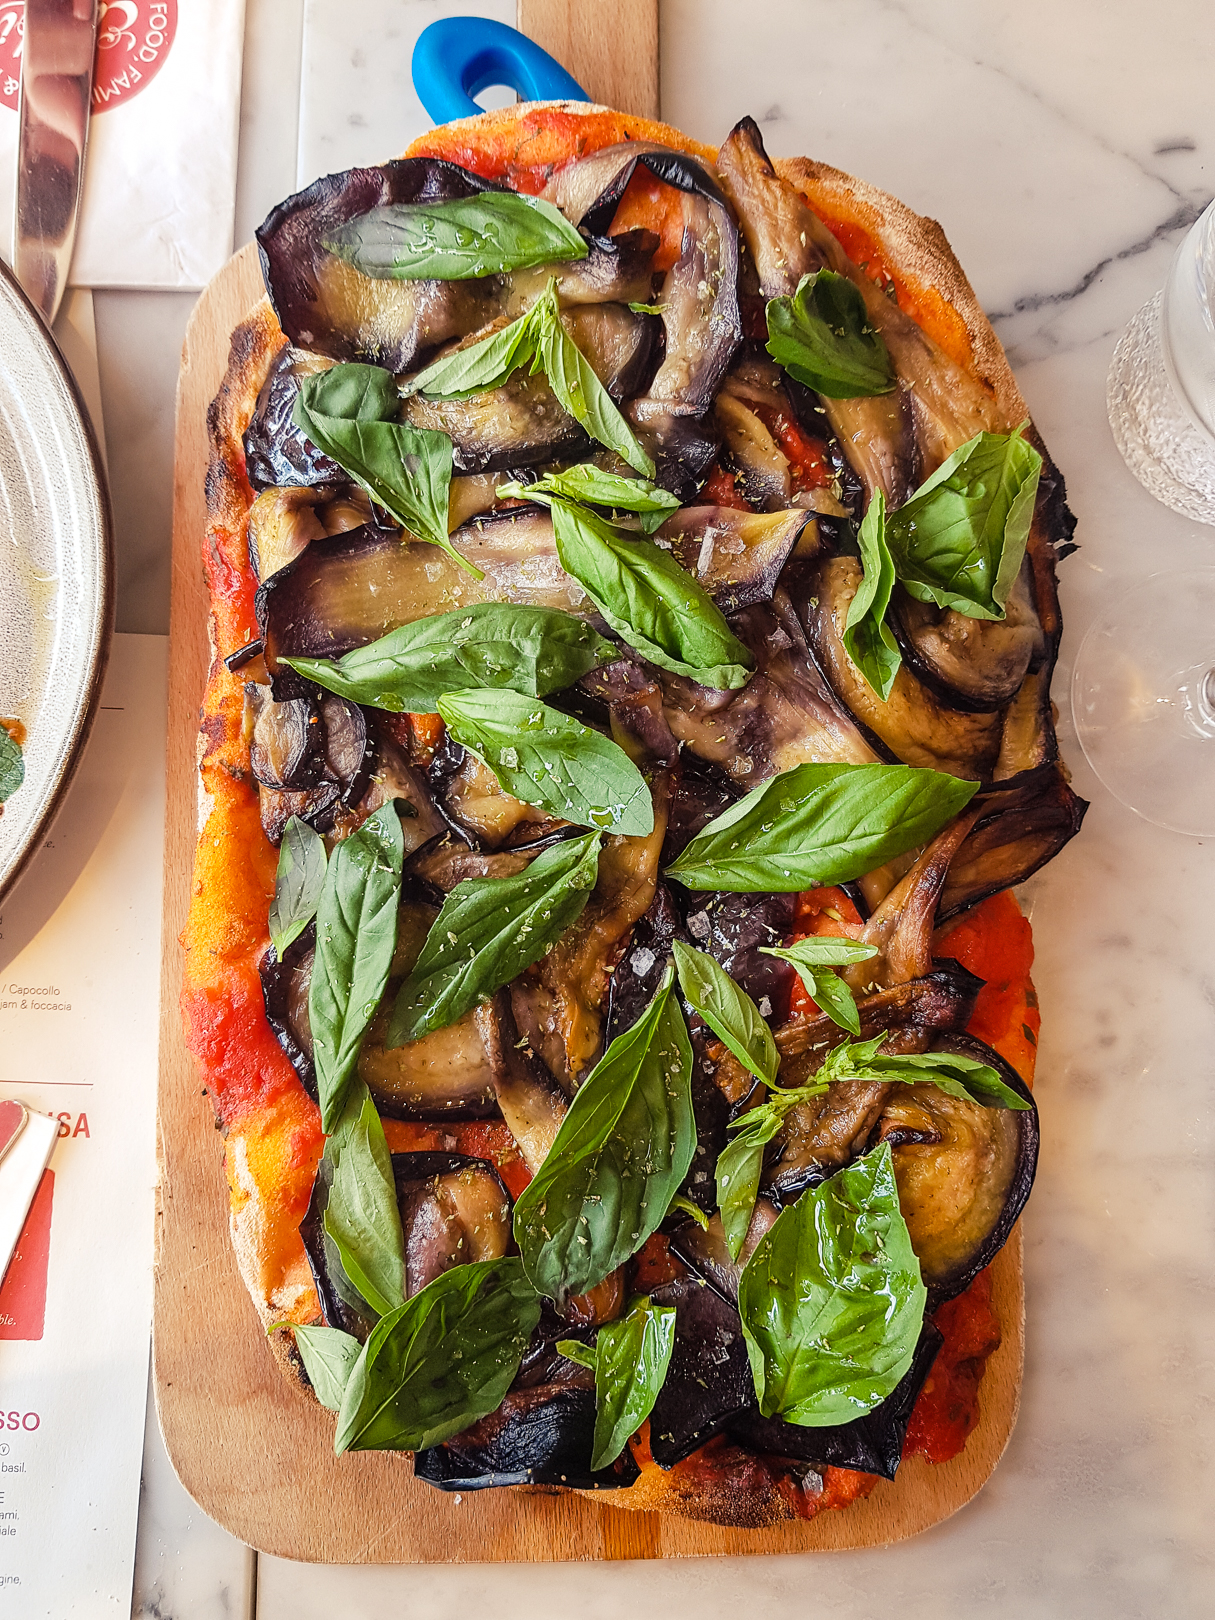 Roman-style pizza with aubergines and basil at Eusebi Deli in Glasgow.